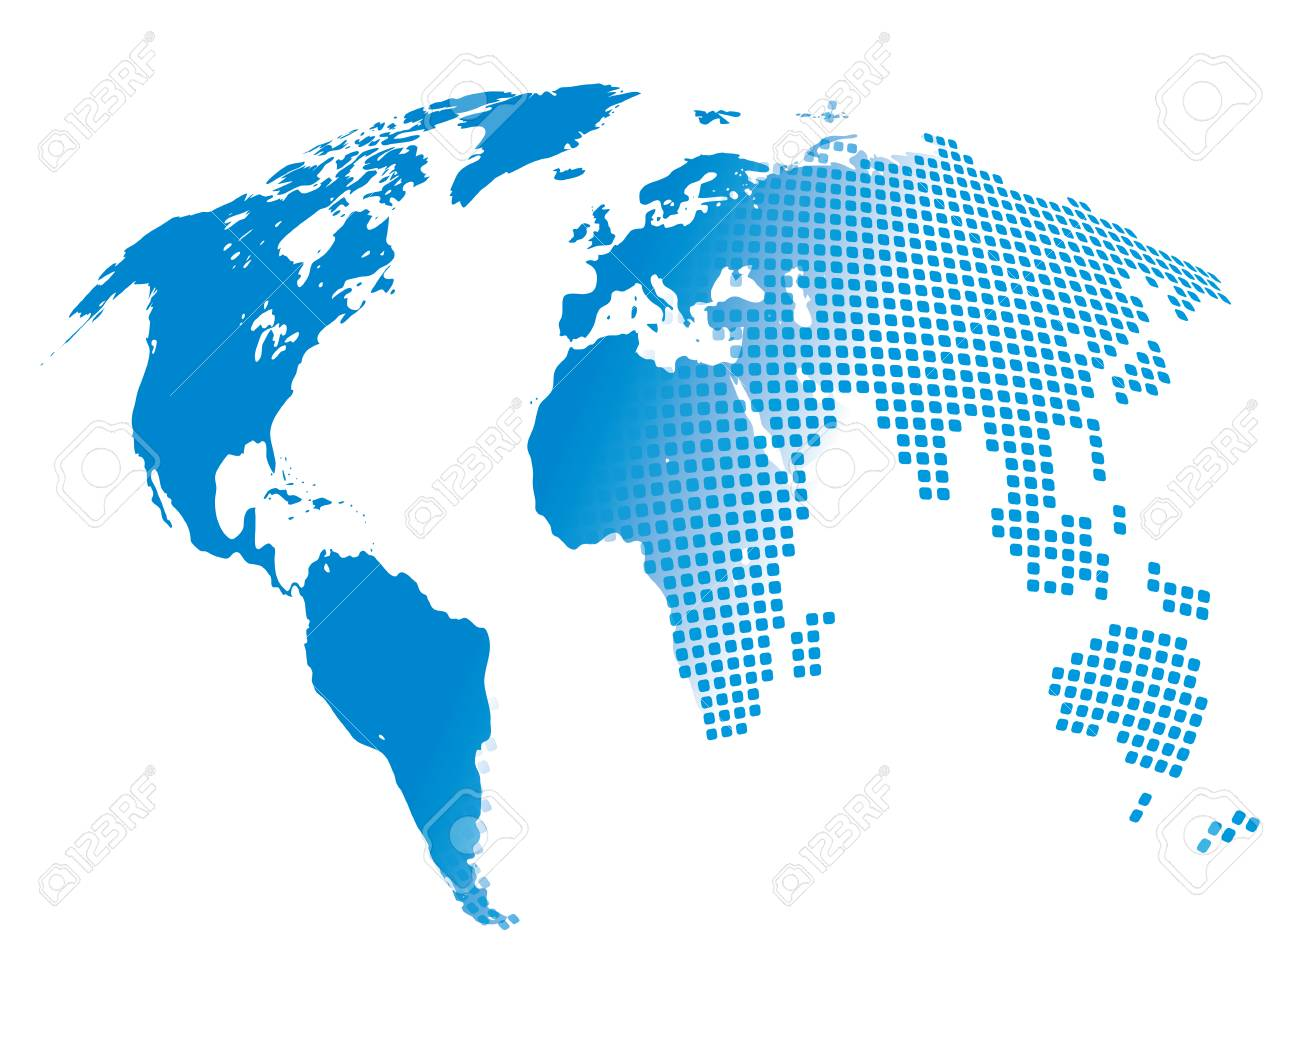 Stylized image of the world map vector illustration stock photo stylized image of the world map vector illustration stock illustration 55218938 sciox Image collections